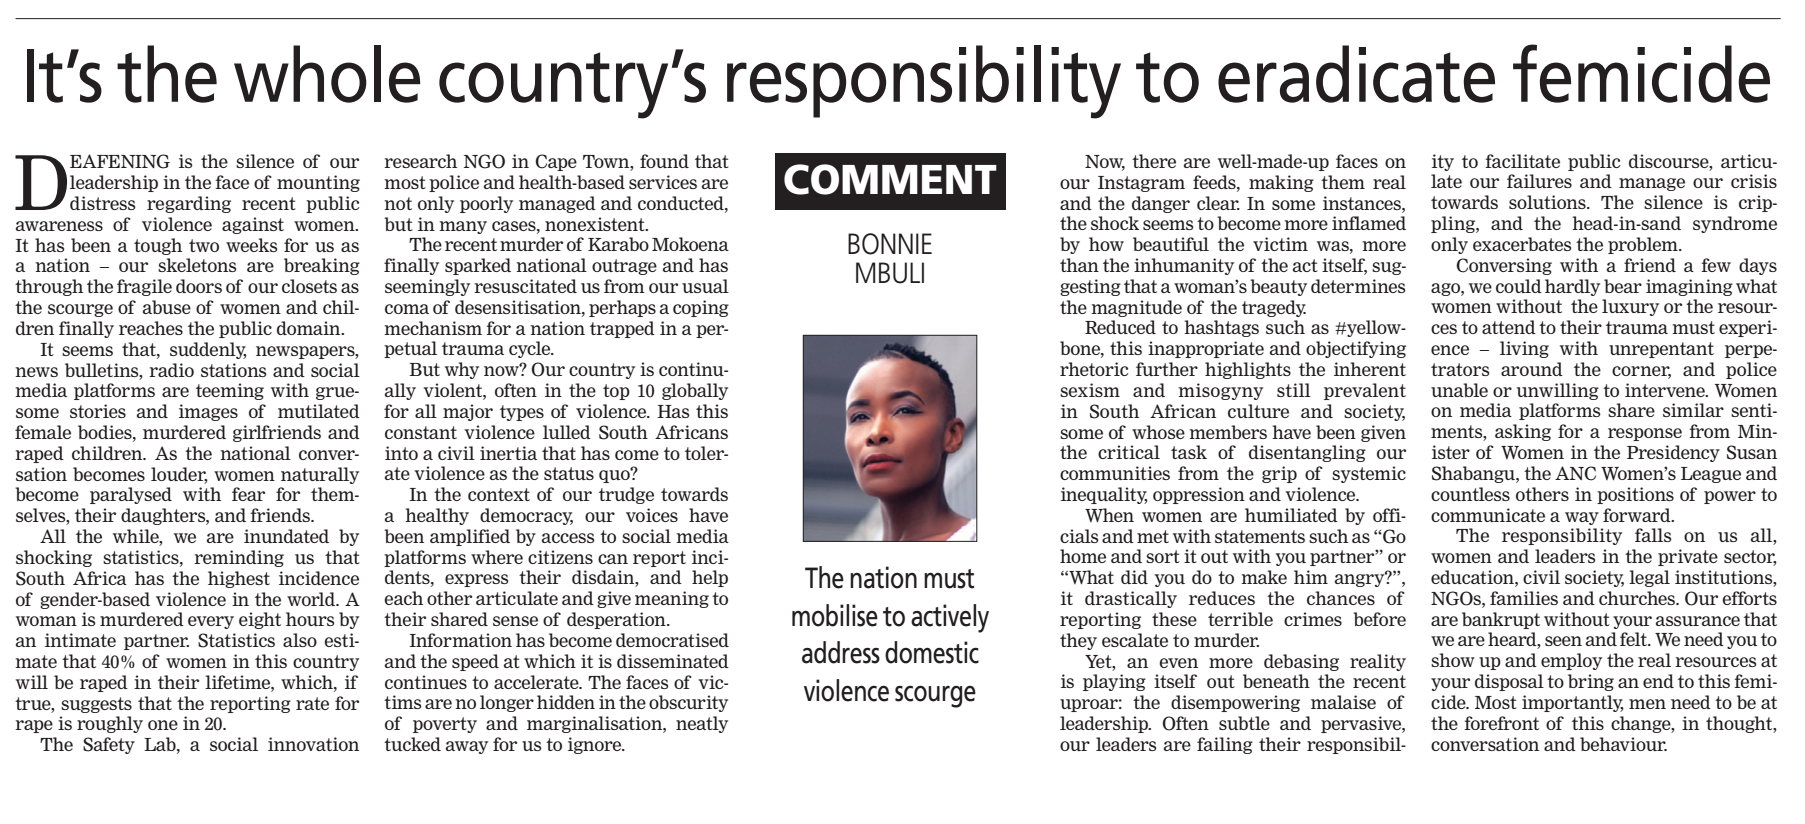 The Star: Eradicating Femicide By Bonnie Mbuli